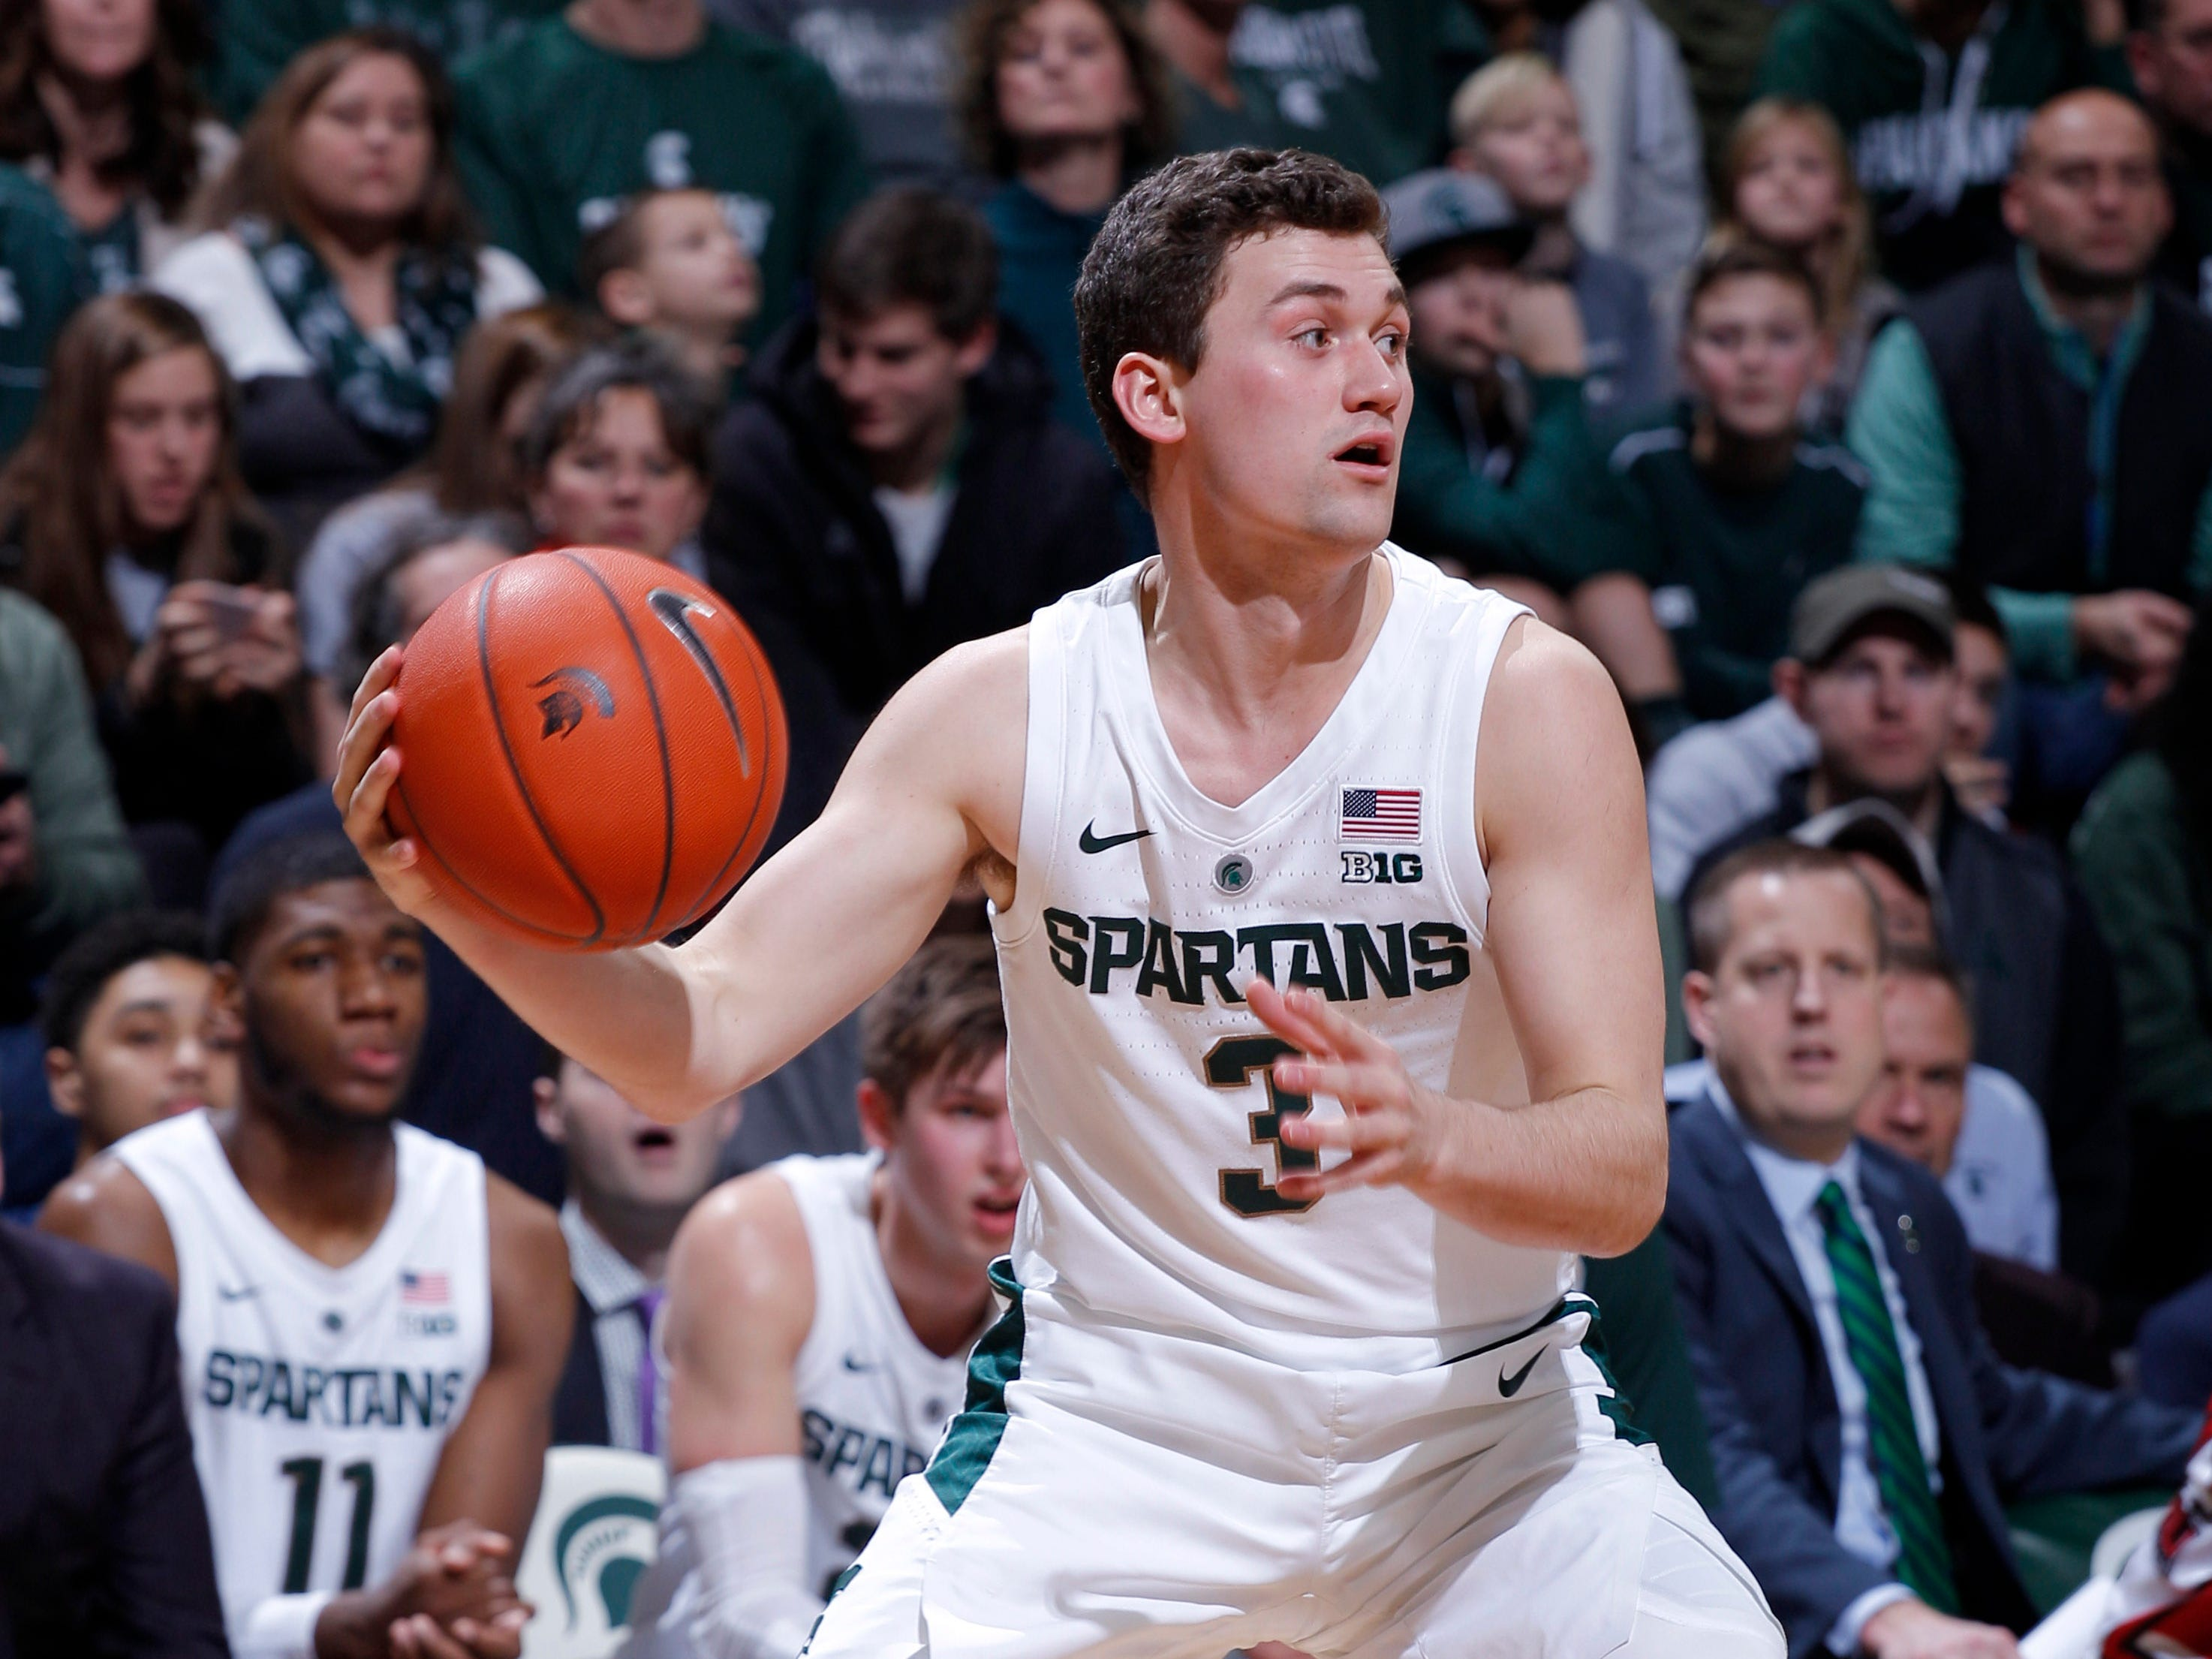 Michigan State's Foster Loyer looks to pass against Northern Illinois' xxx, Saturday, Dec. 29, 2018, in East Lansing, Mich.